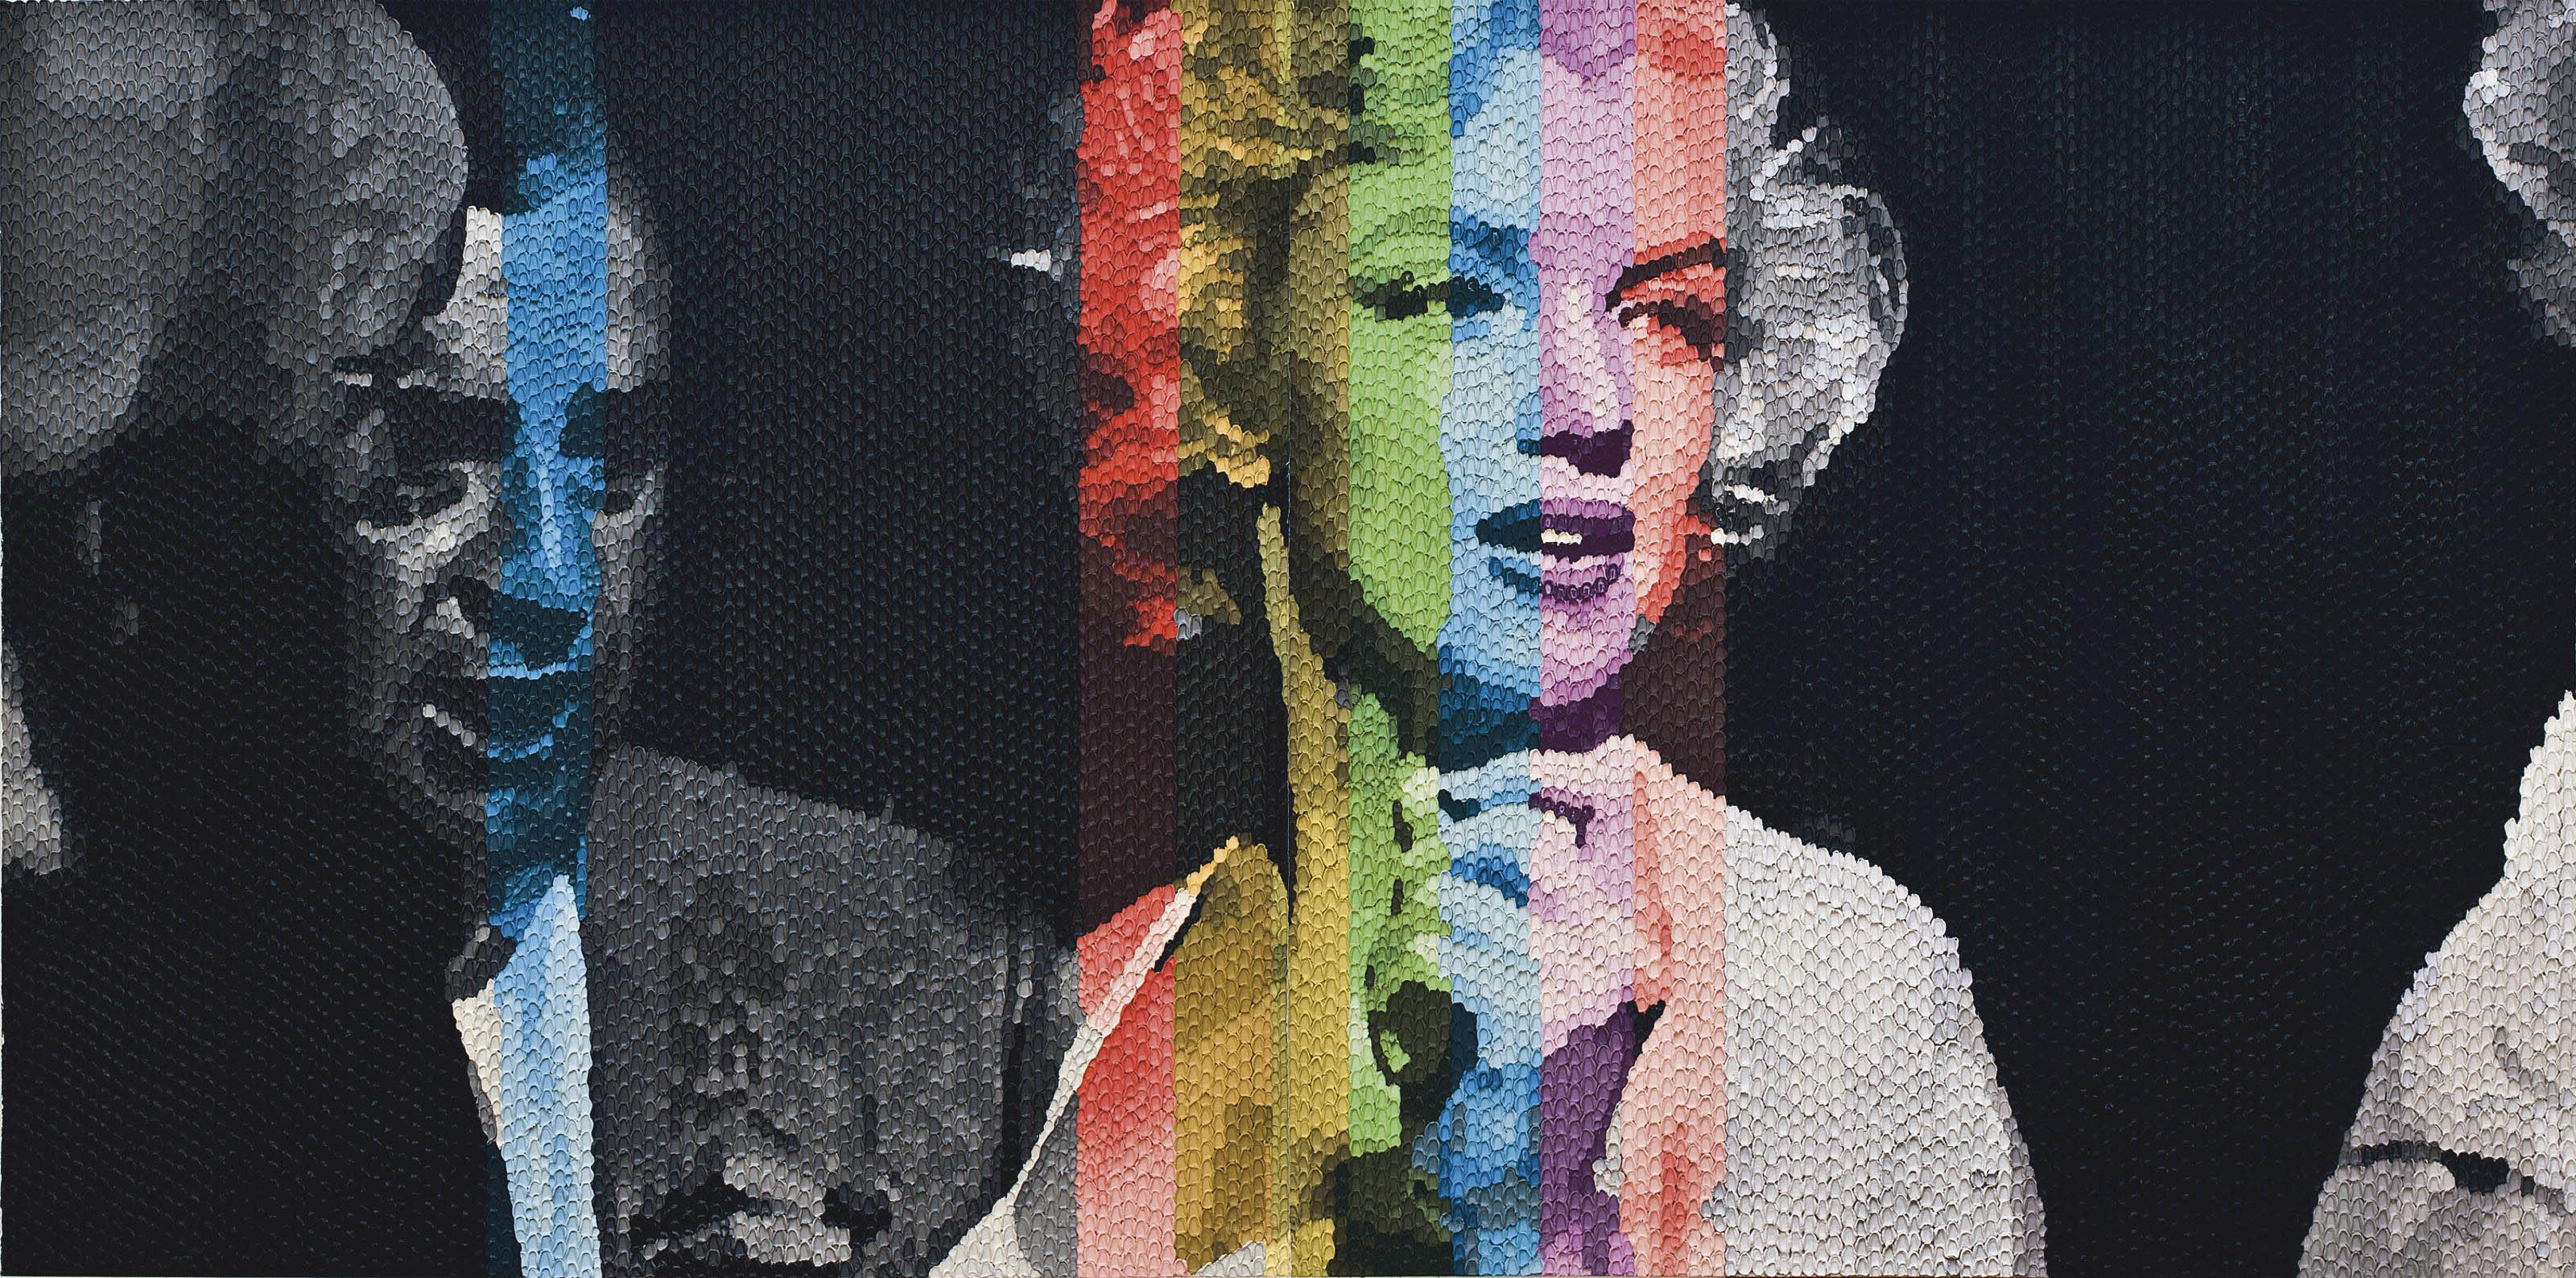 Marilyn Monroe (from the Interface series)